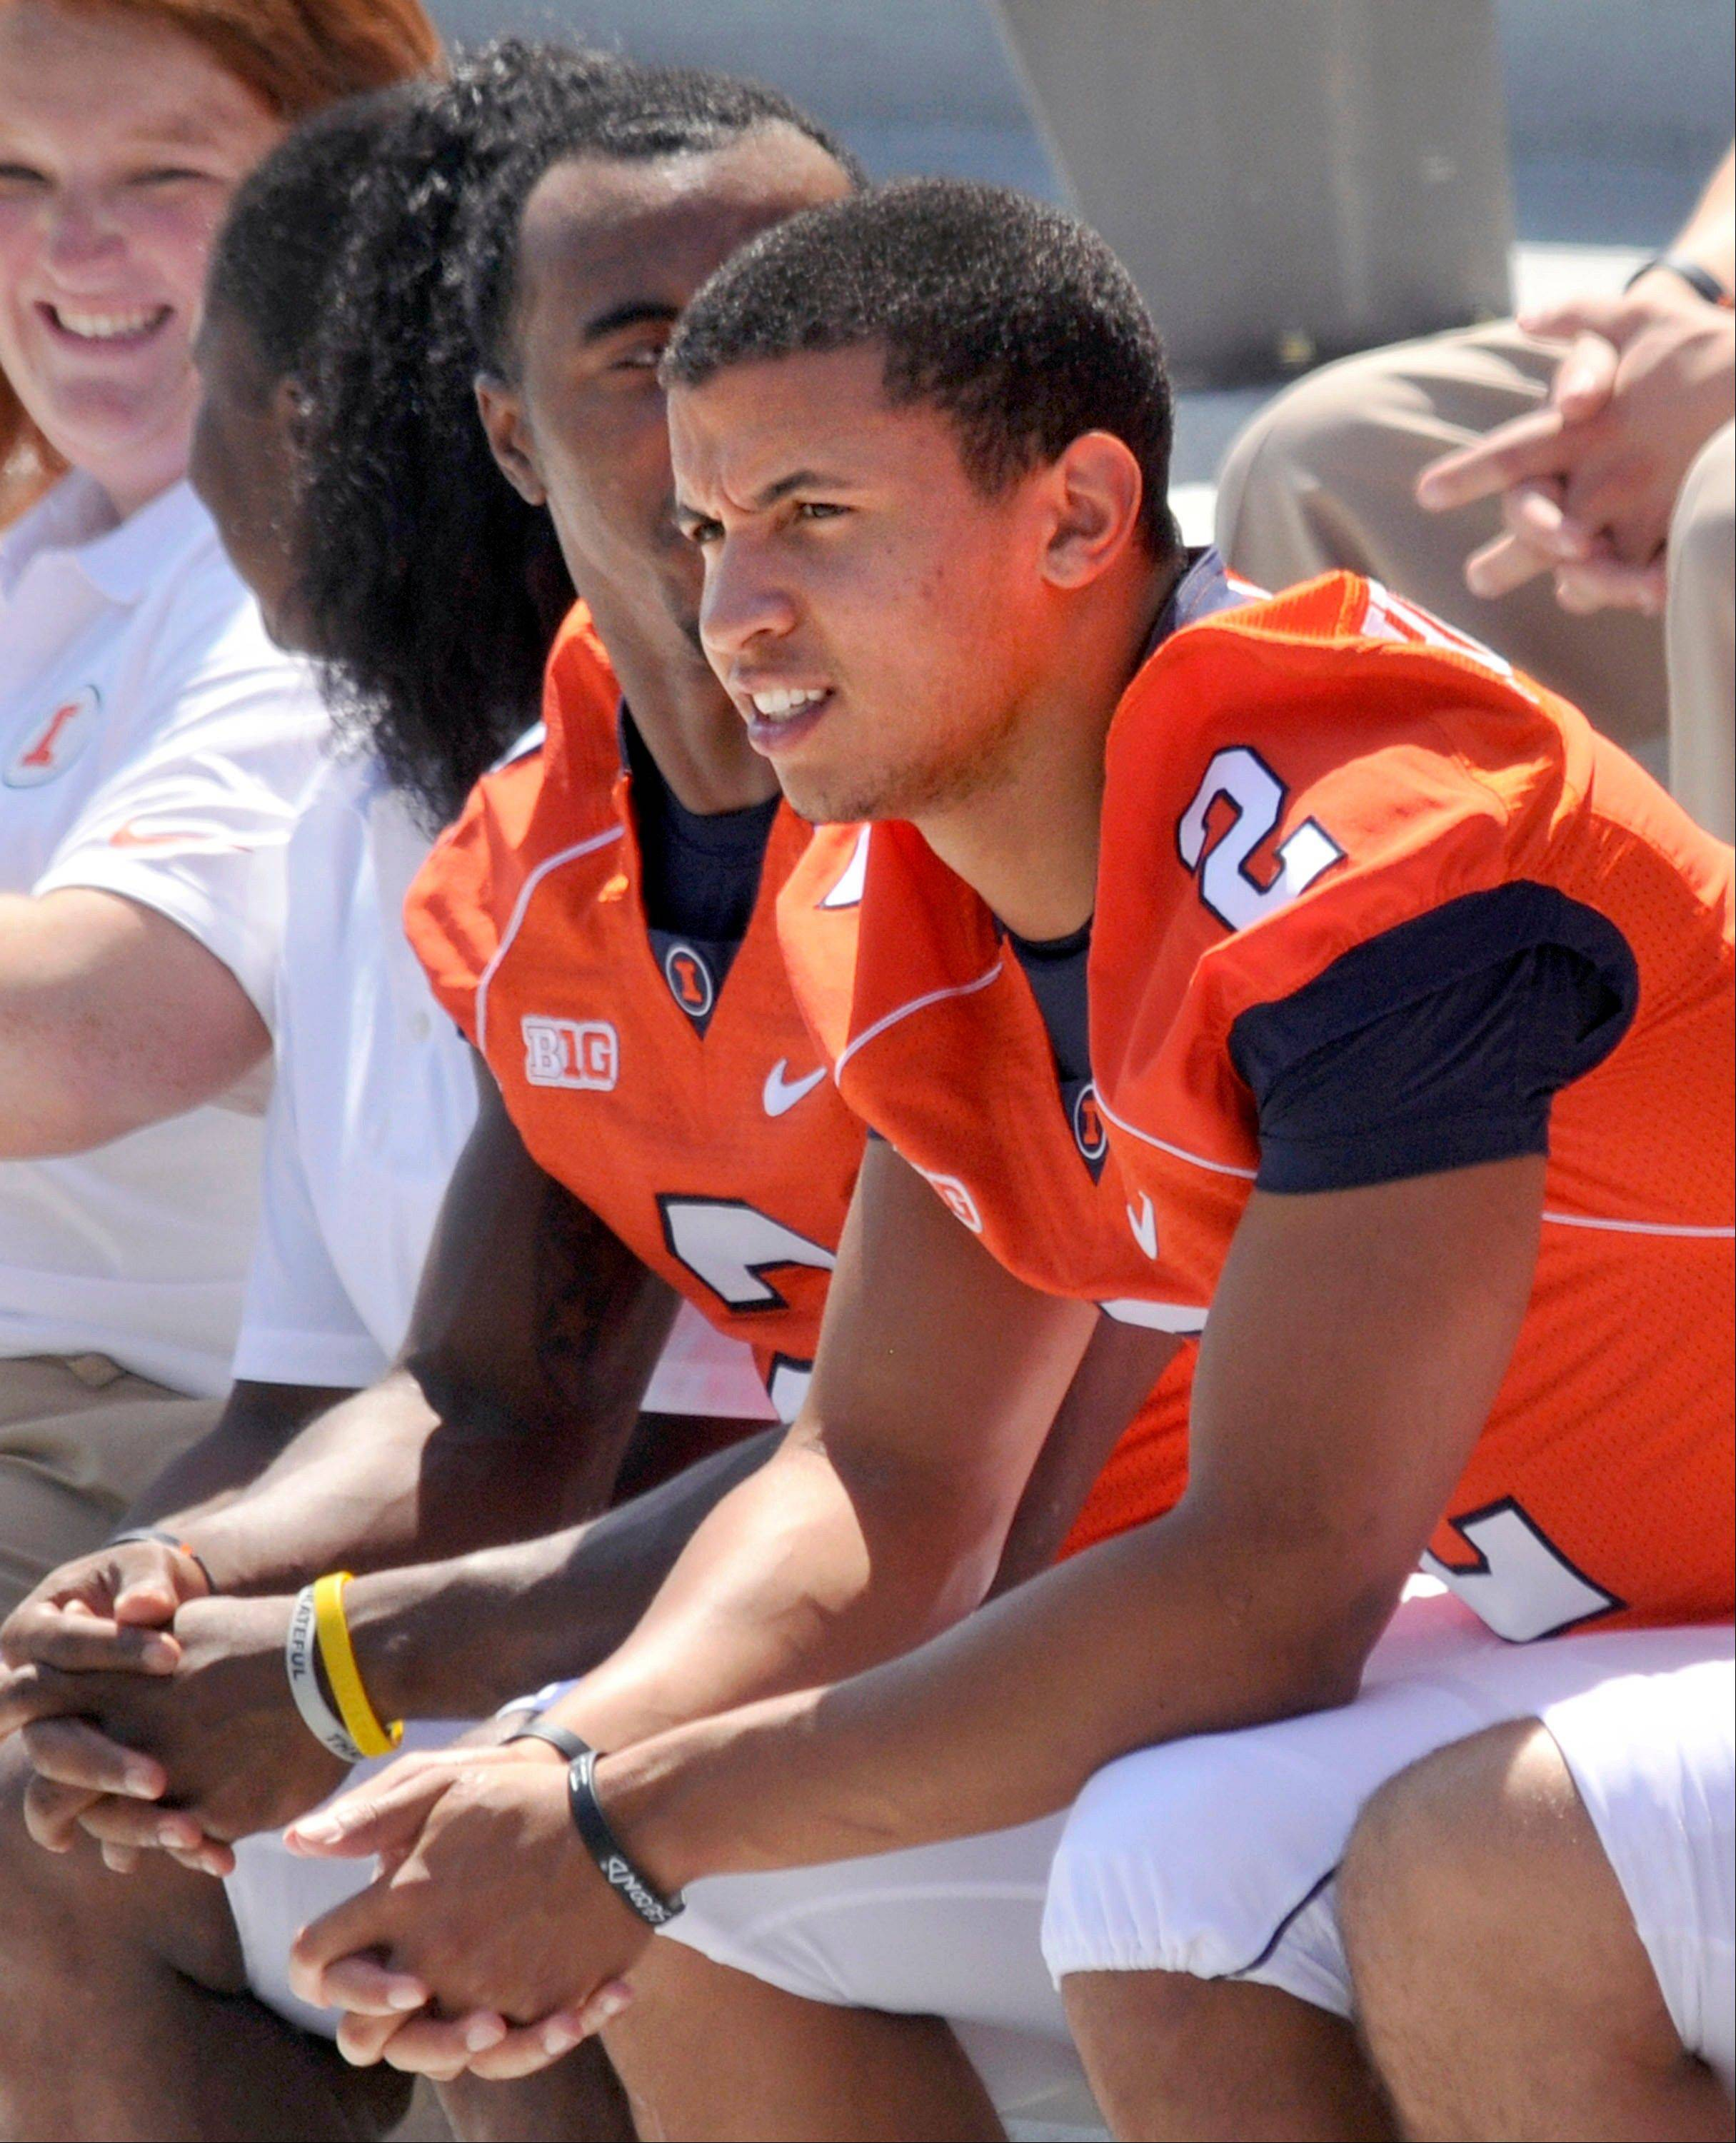 After 2012 troubles, Illini looking for progress